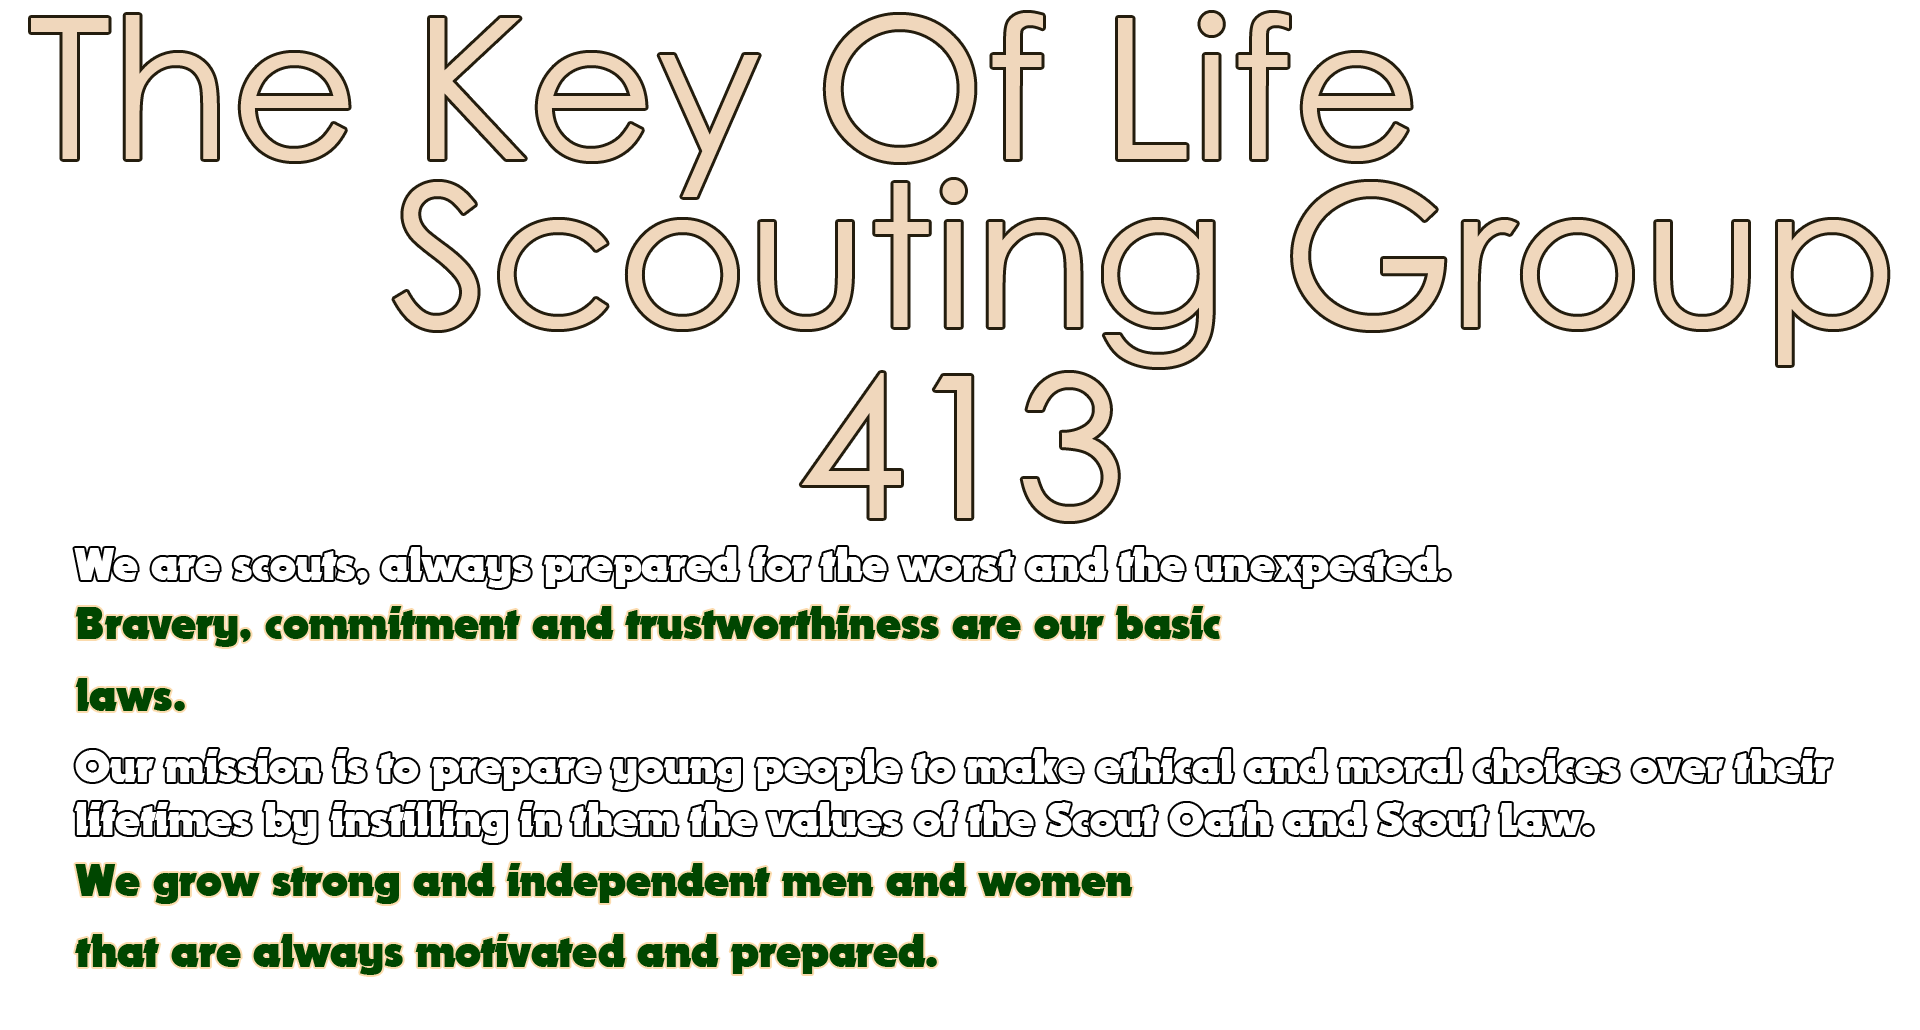 The Key Of Life Scouting Group